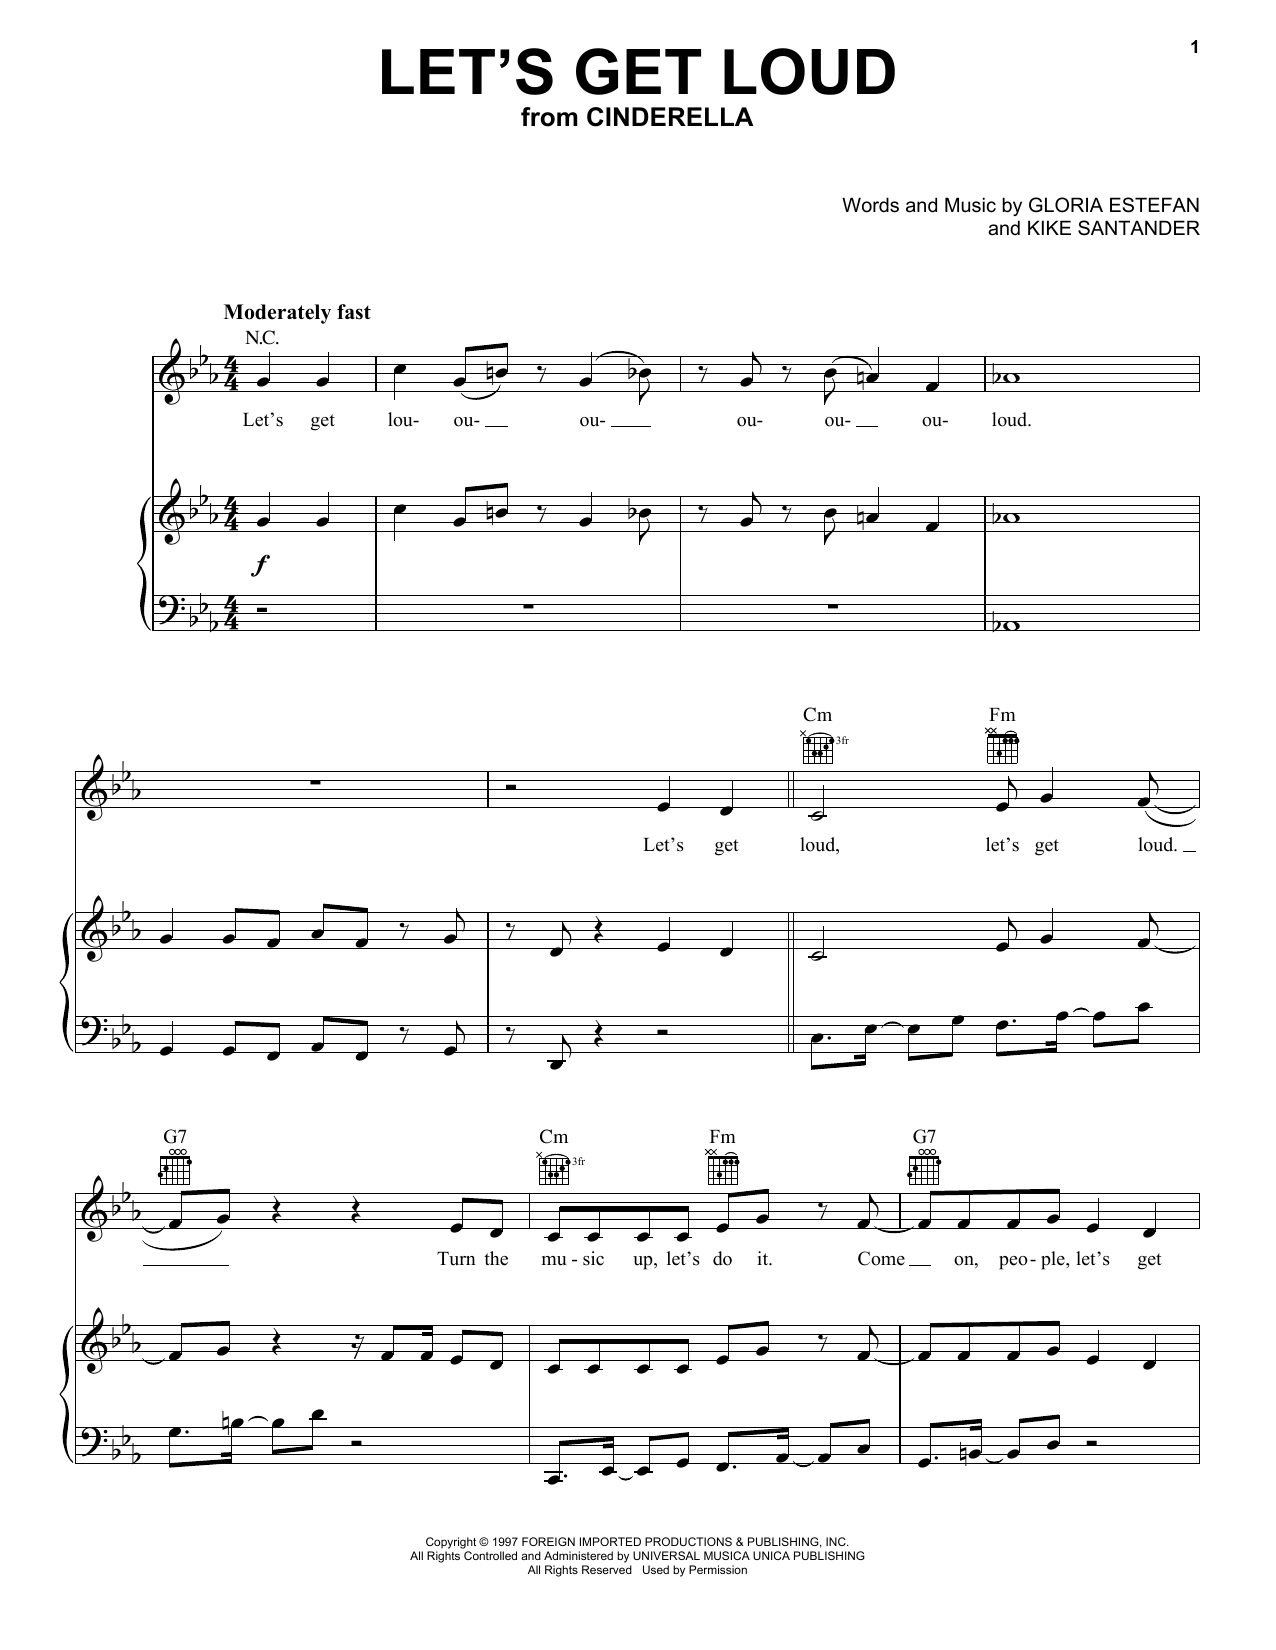 Camila Cabello, Nicholas Galitzine and Idina Menzel Let's Get Loud (from the Amazon Original Movie Cinderella) sheet music preview music notes and score for Piano, Vocal & Guitar (Right-Hand Melody) including 13 page(s)